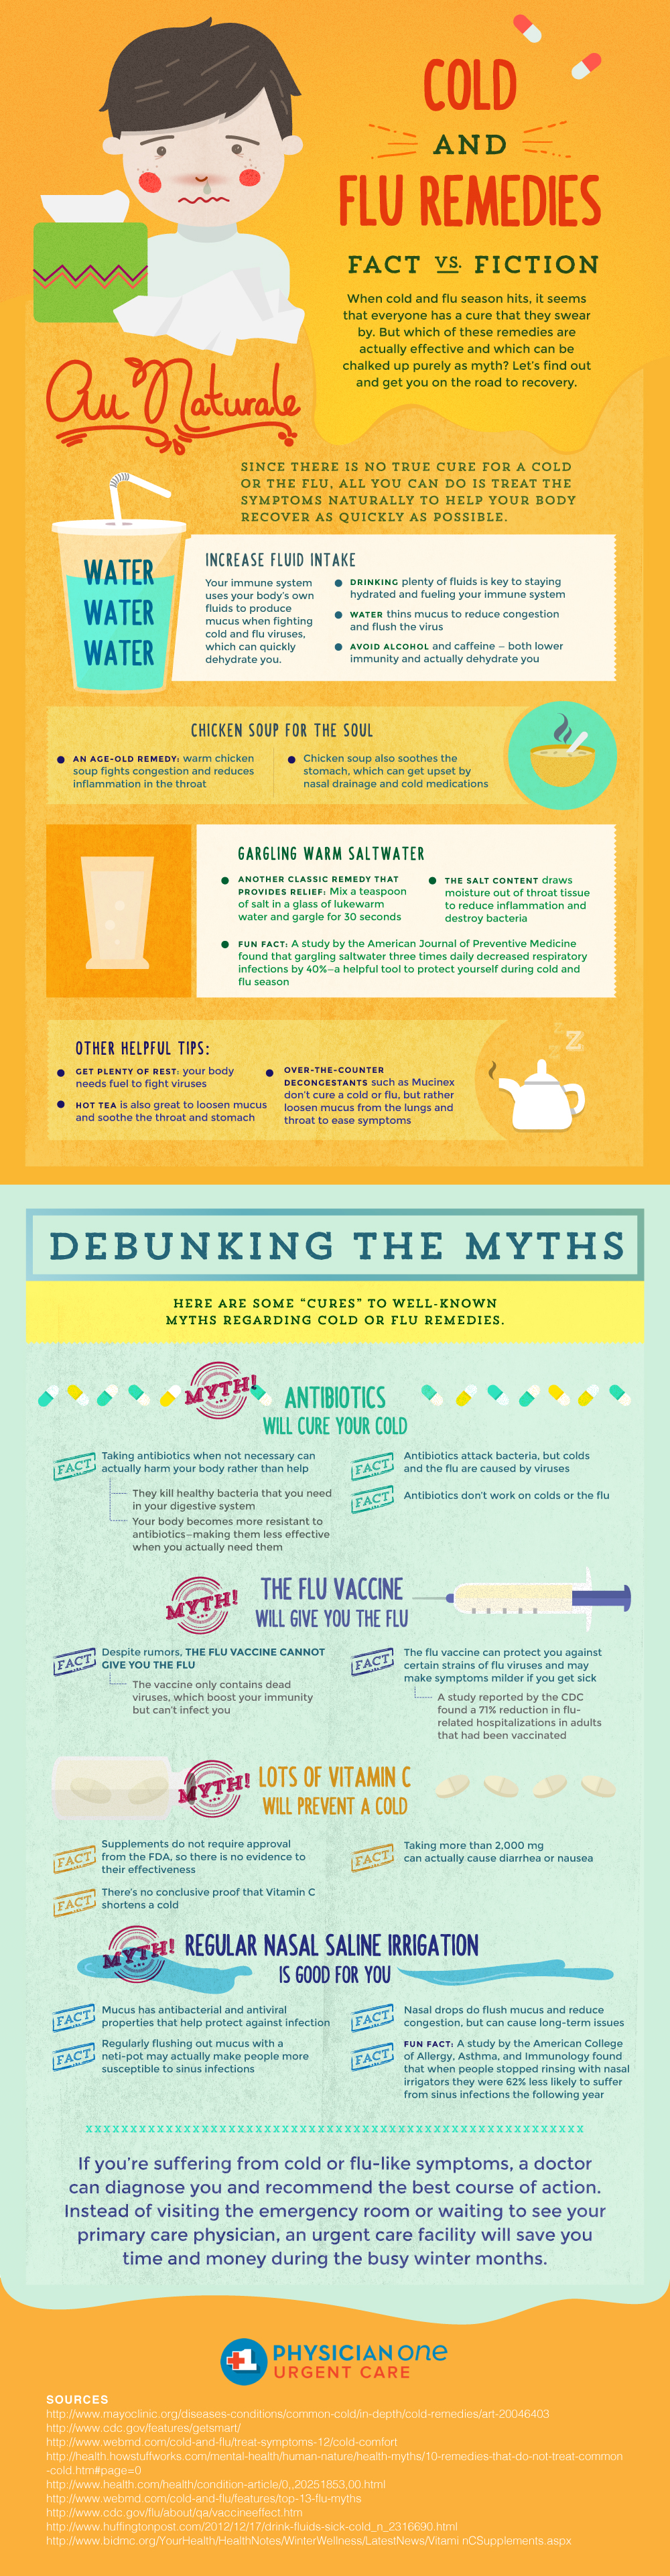 Cold & Flu Remedies: What's True And What's Fiction Infographic